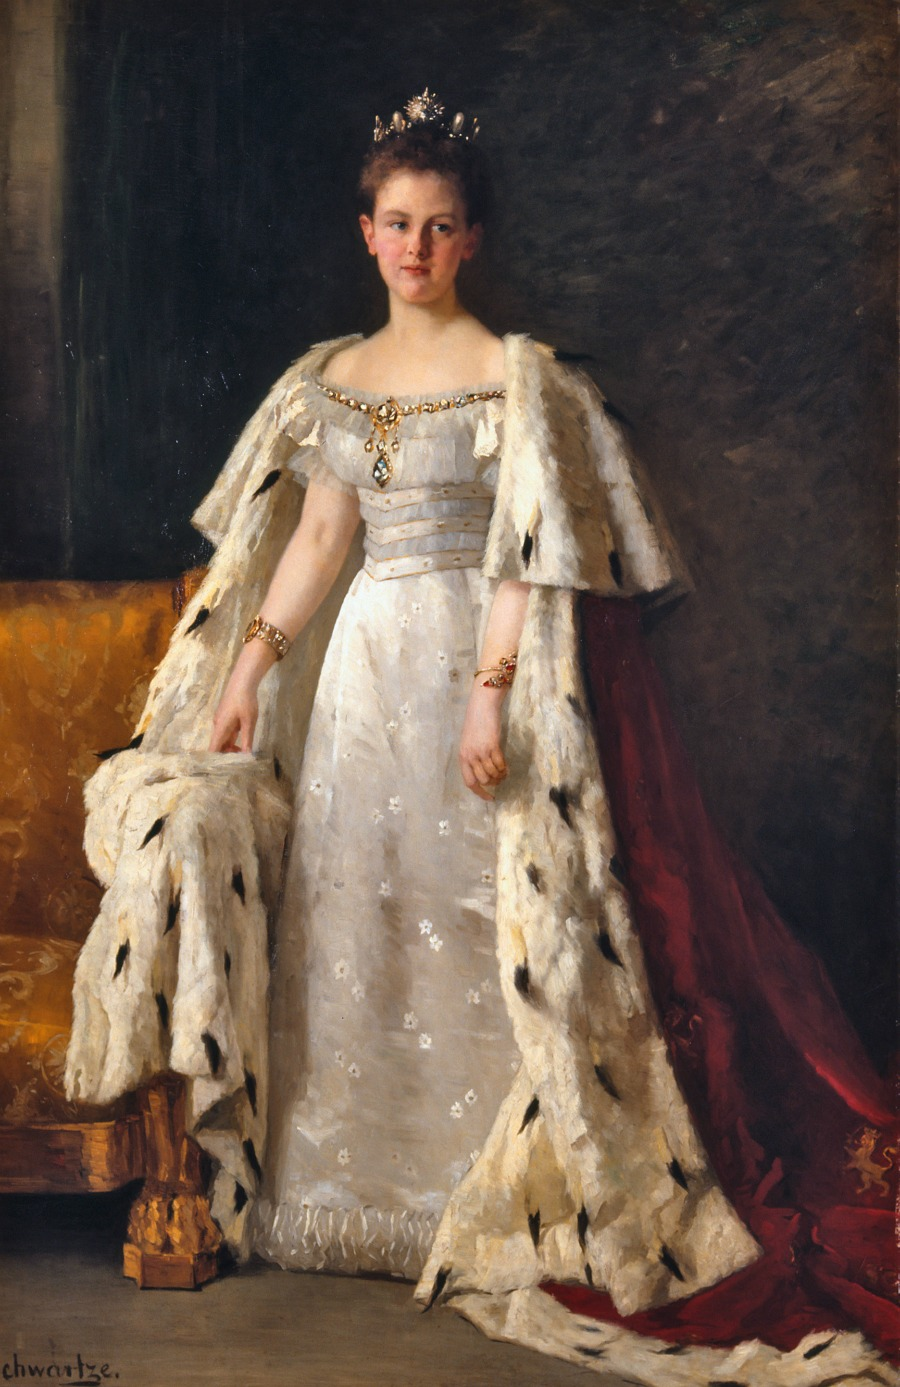 Queen Wilhelmina wearing her coronation robe by Thérèse Schwartze, 1898